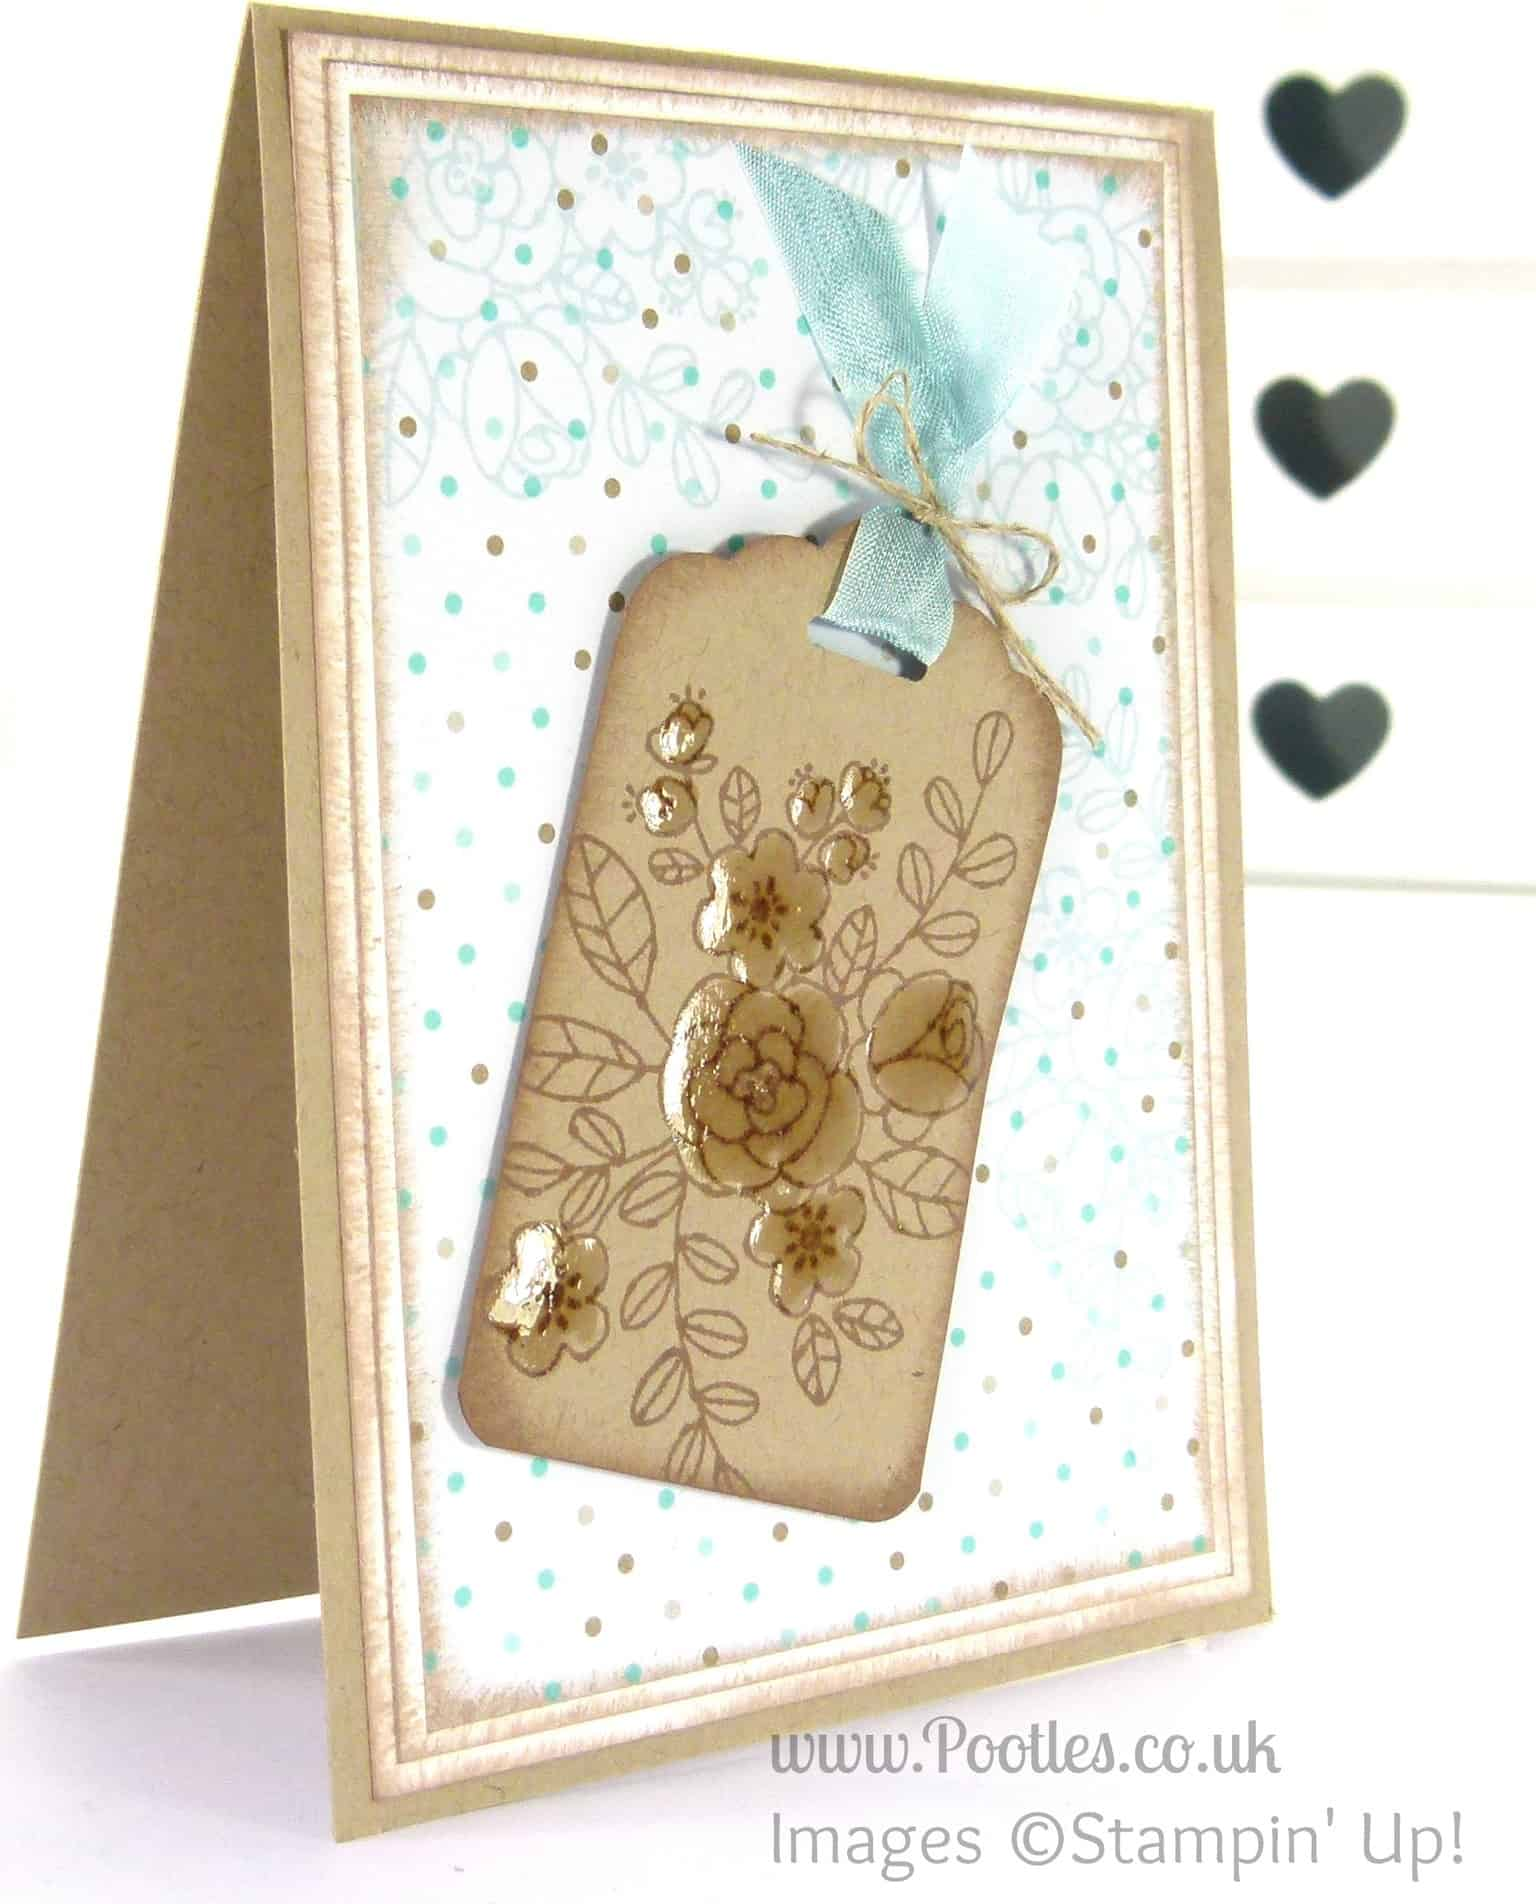 Stampin' Up! UK Independent Demonstrator - Pootles. So Very Grateful for the Tag Topper Punch...